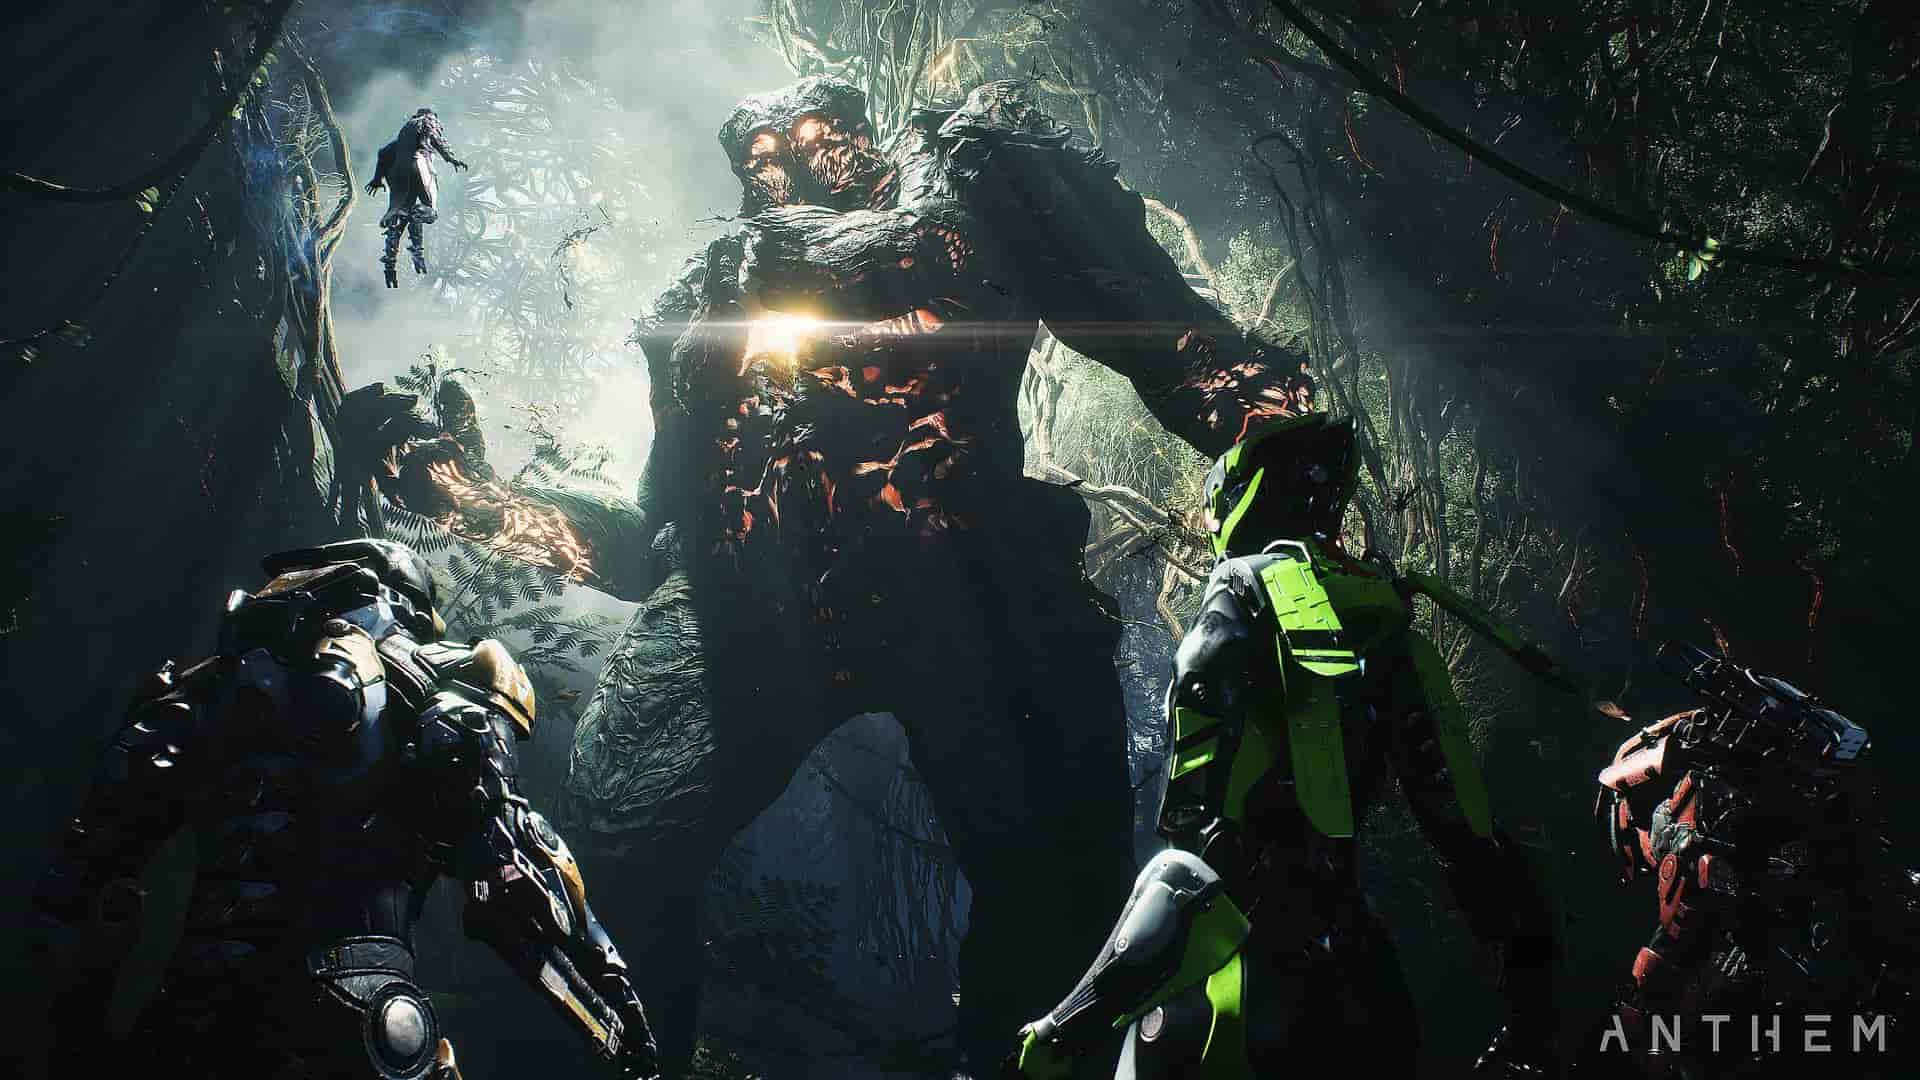 Anthem Story Trailer Lands Smoothly, Release Date Detailed